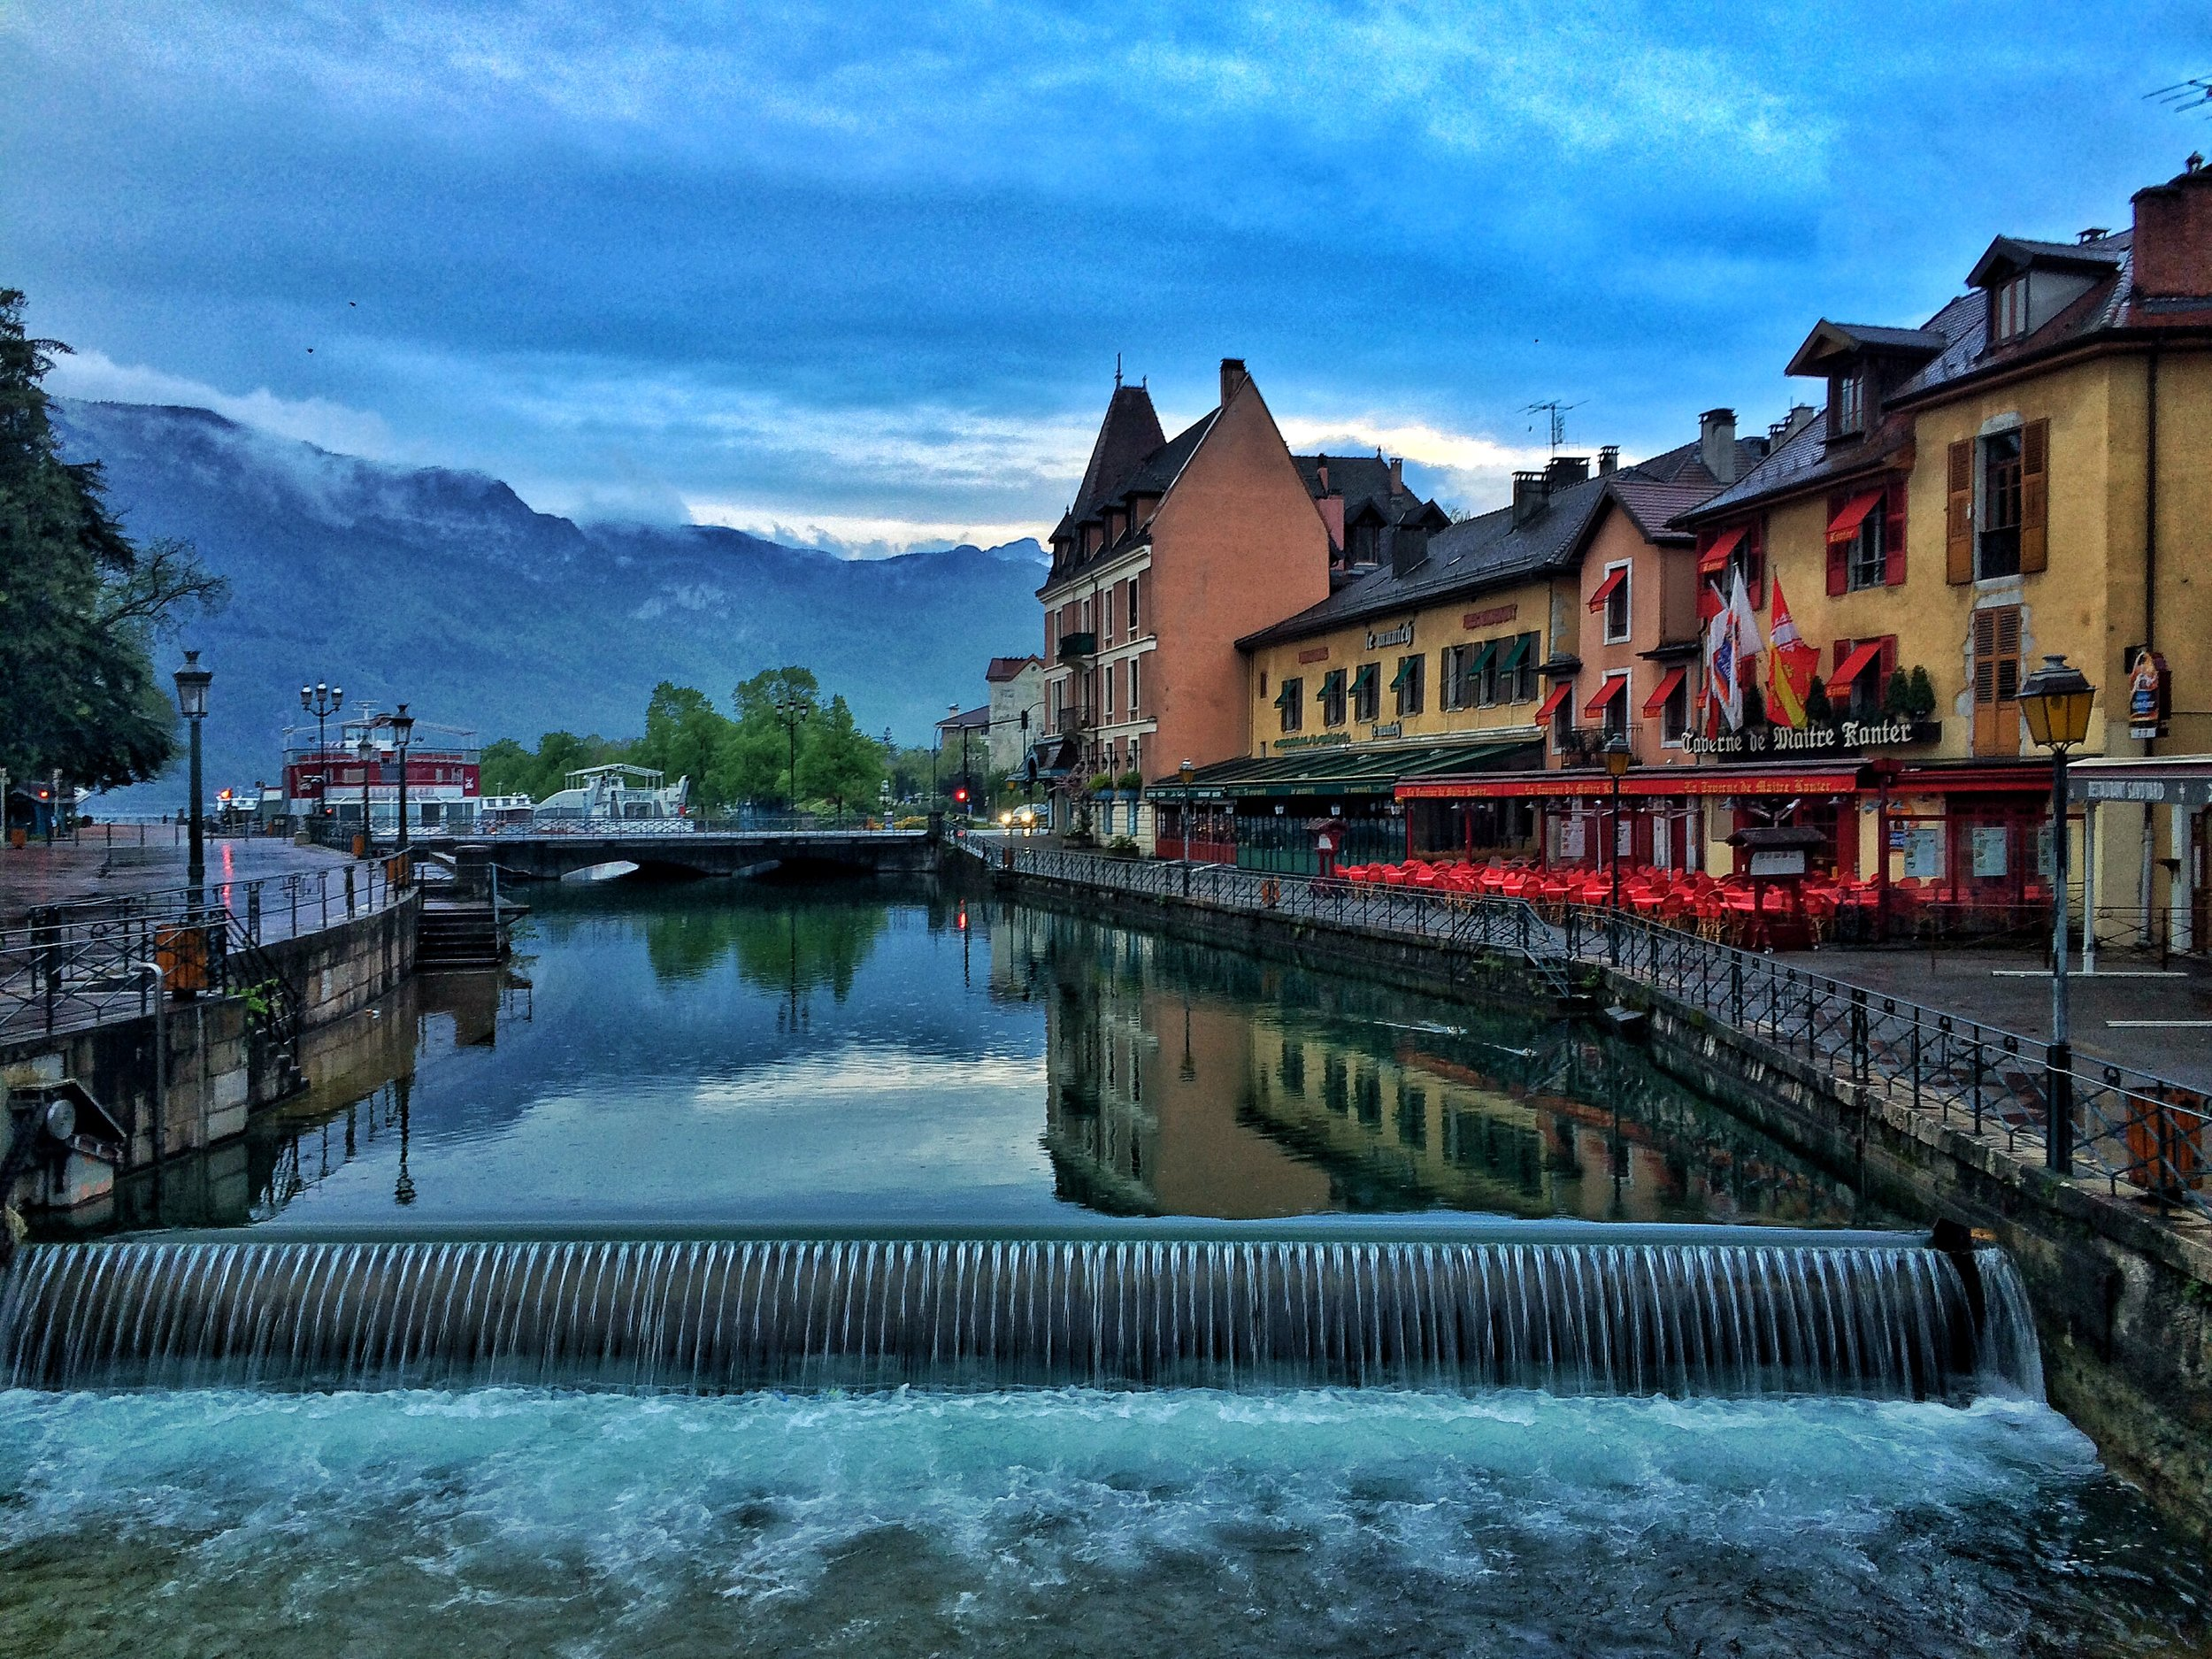 Annecy is a town with charming canals, an alpine lake, and historic structures in France.